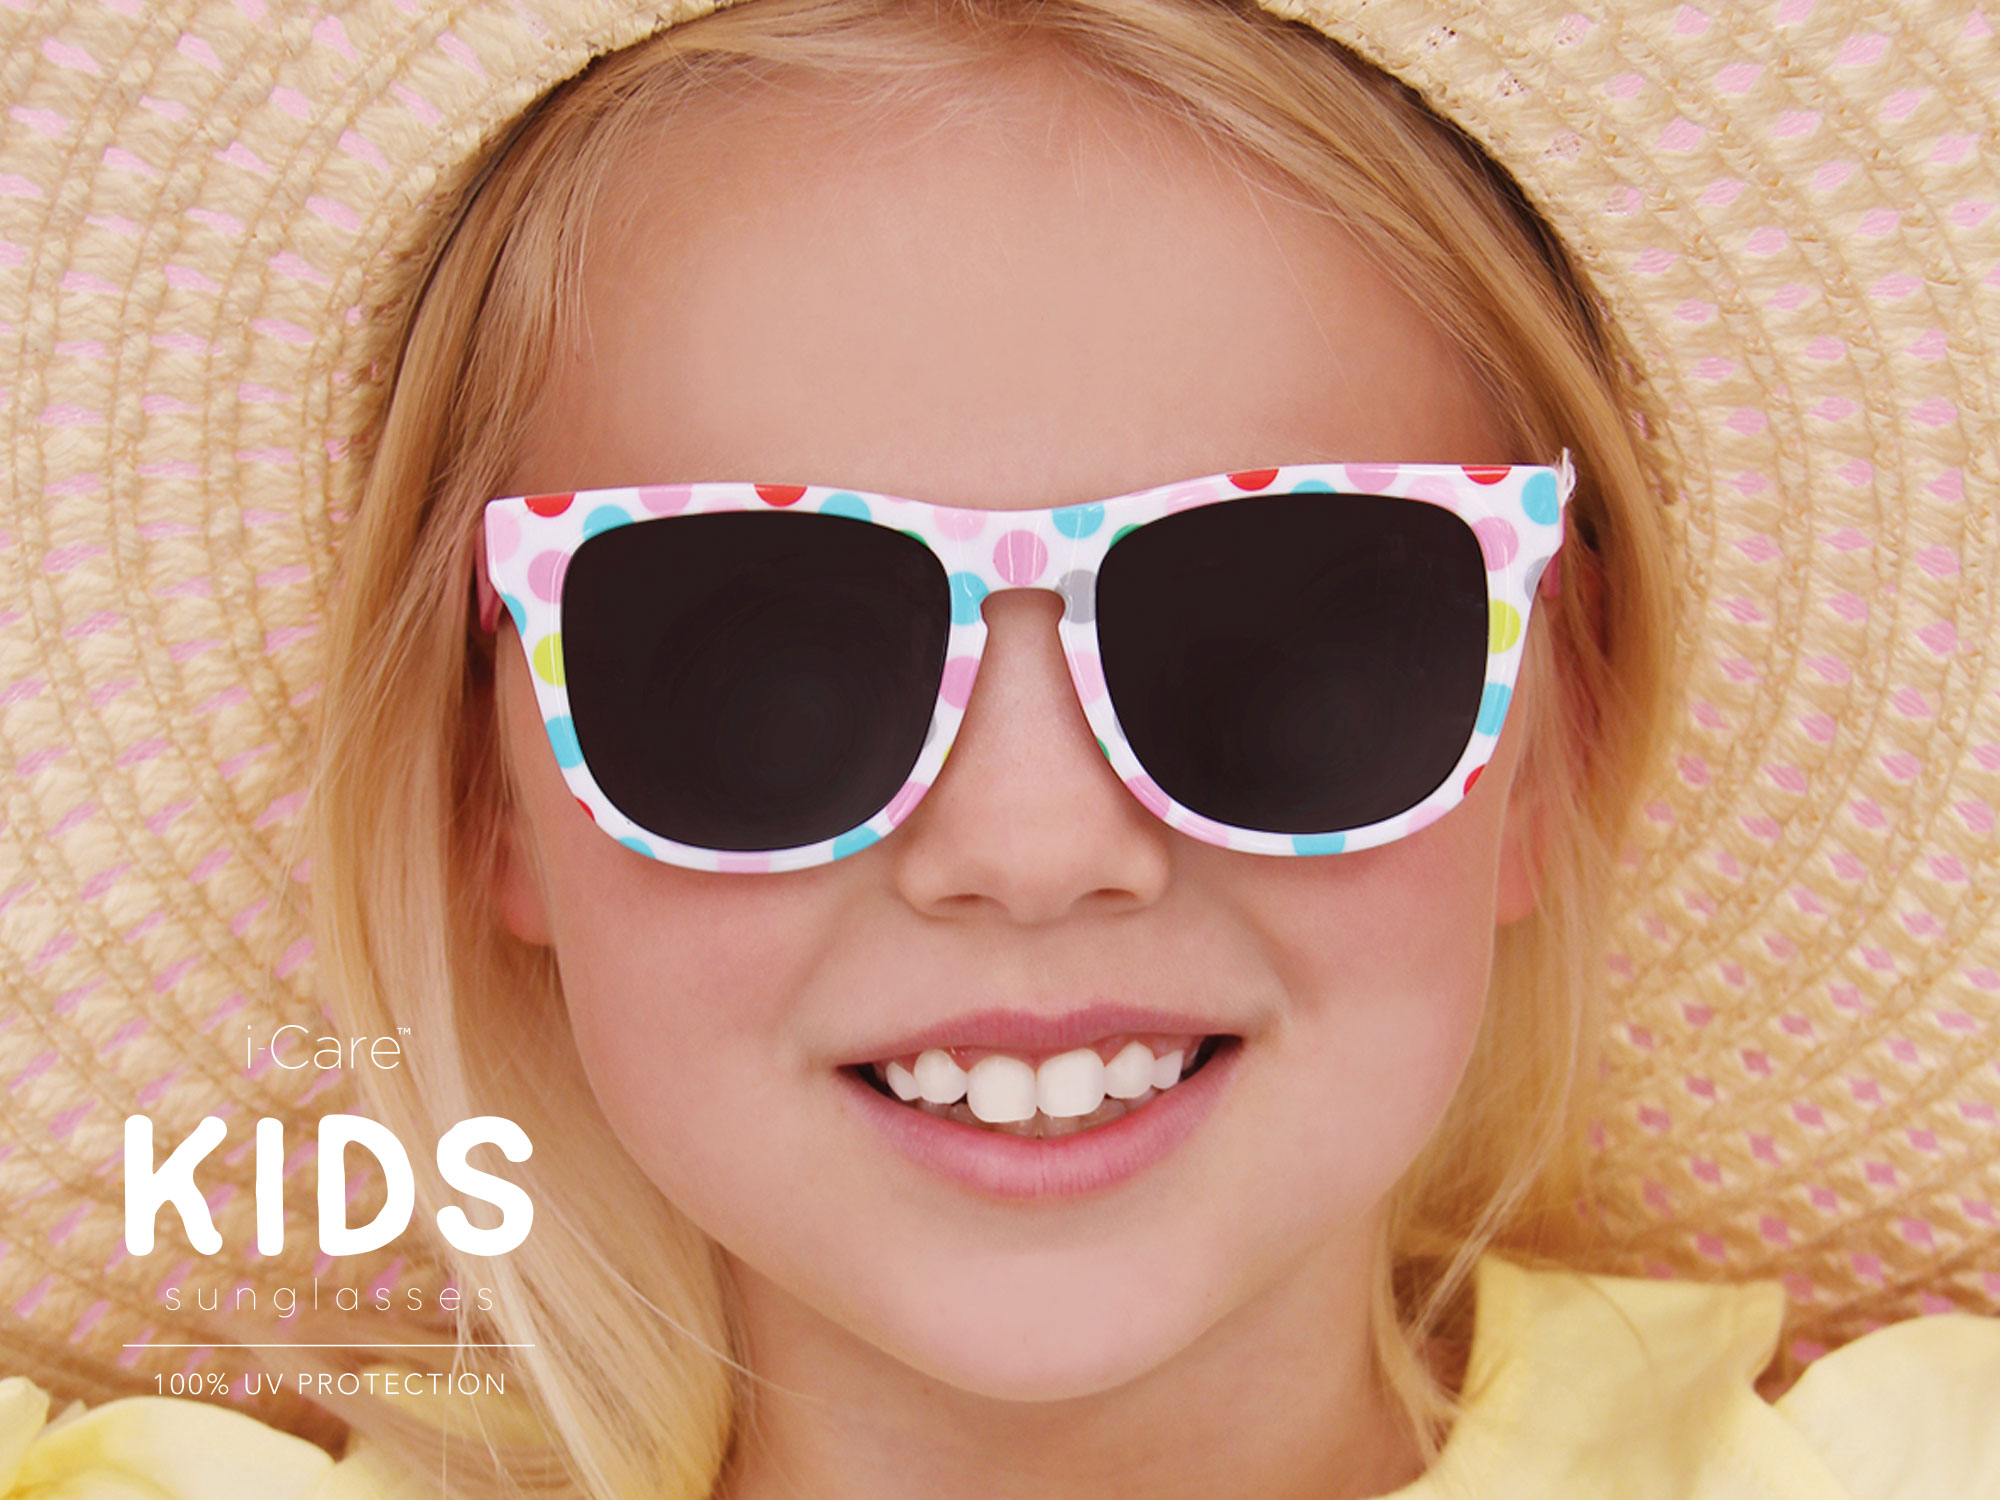 kids - We are serious in providing premium eye protection against the damaging effects of UV radiation for your children by promising to offer all our sunglasses 100% UV protection that will block out the sun's harmful rays. We shall continue to develop innovative new products ranging from birth to 14 year olds.